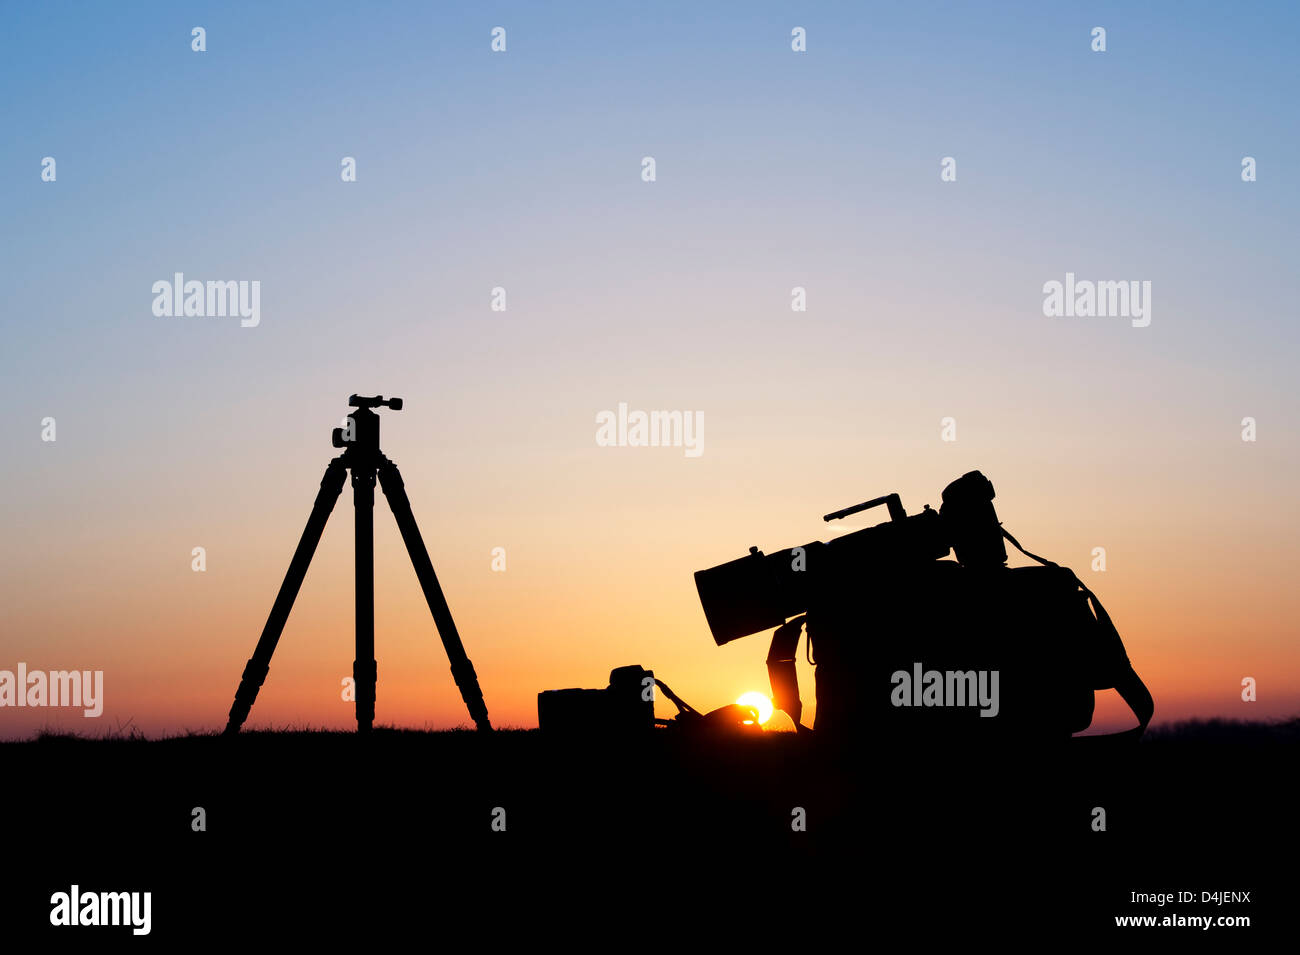 Camera equipment at sunrise. Silhouette - Stock Image